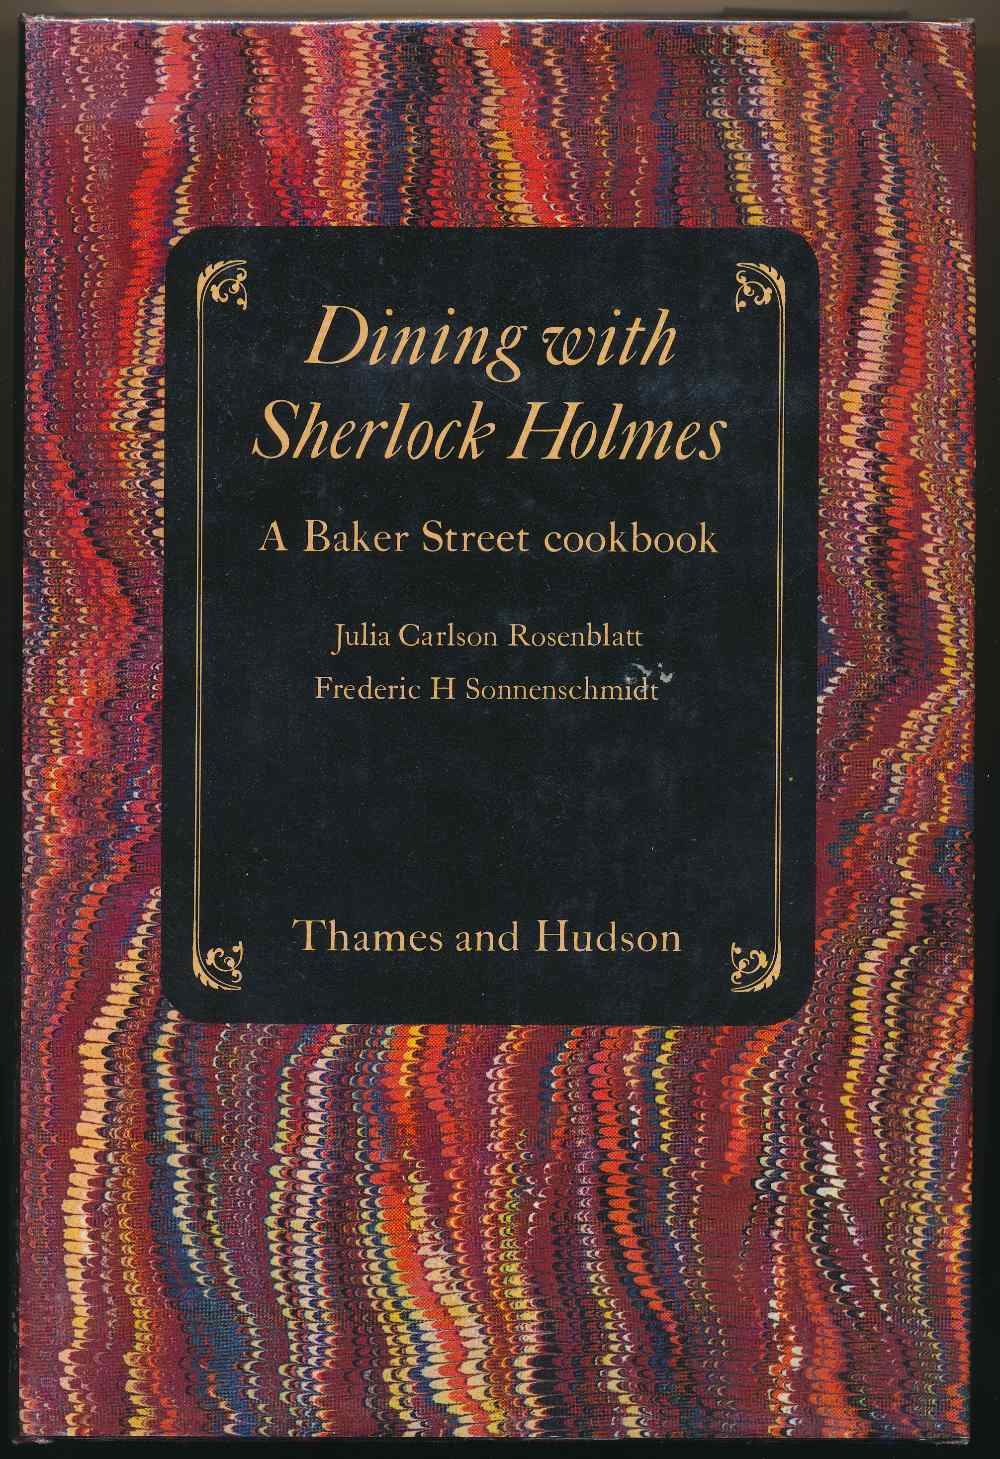 Dining with Sherlock Holmes : a Baker Street cookbook